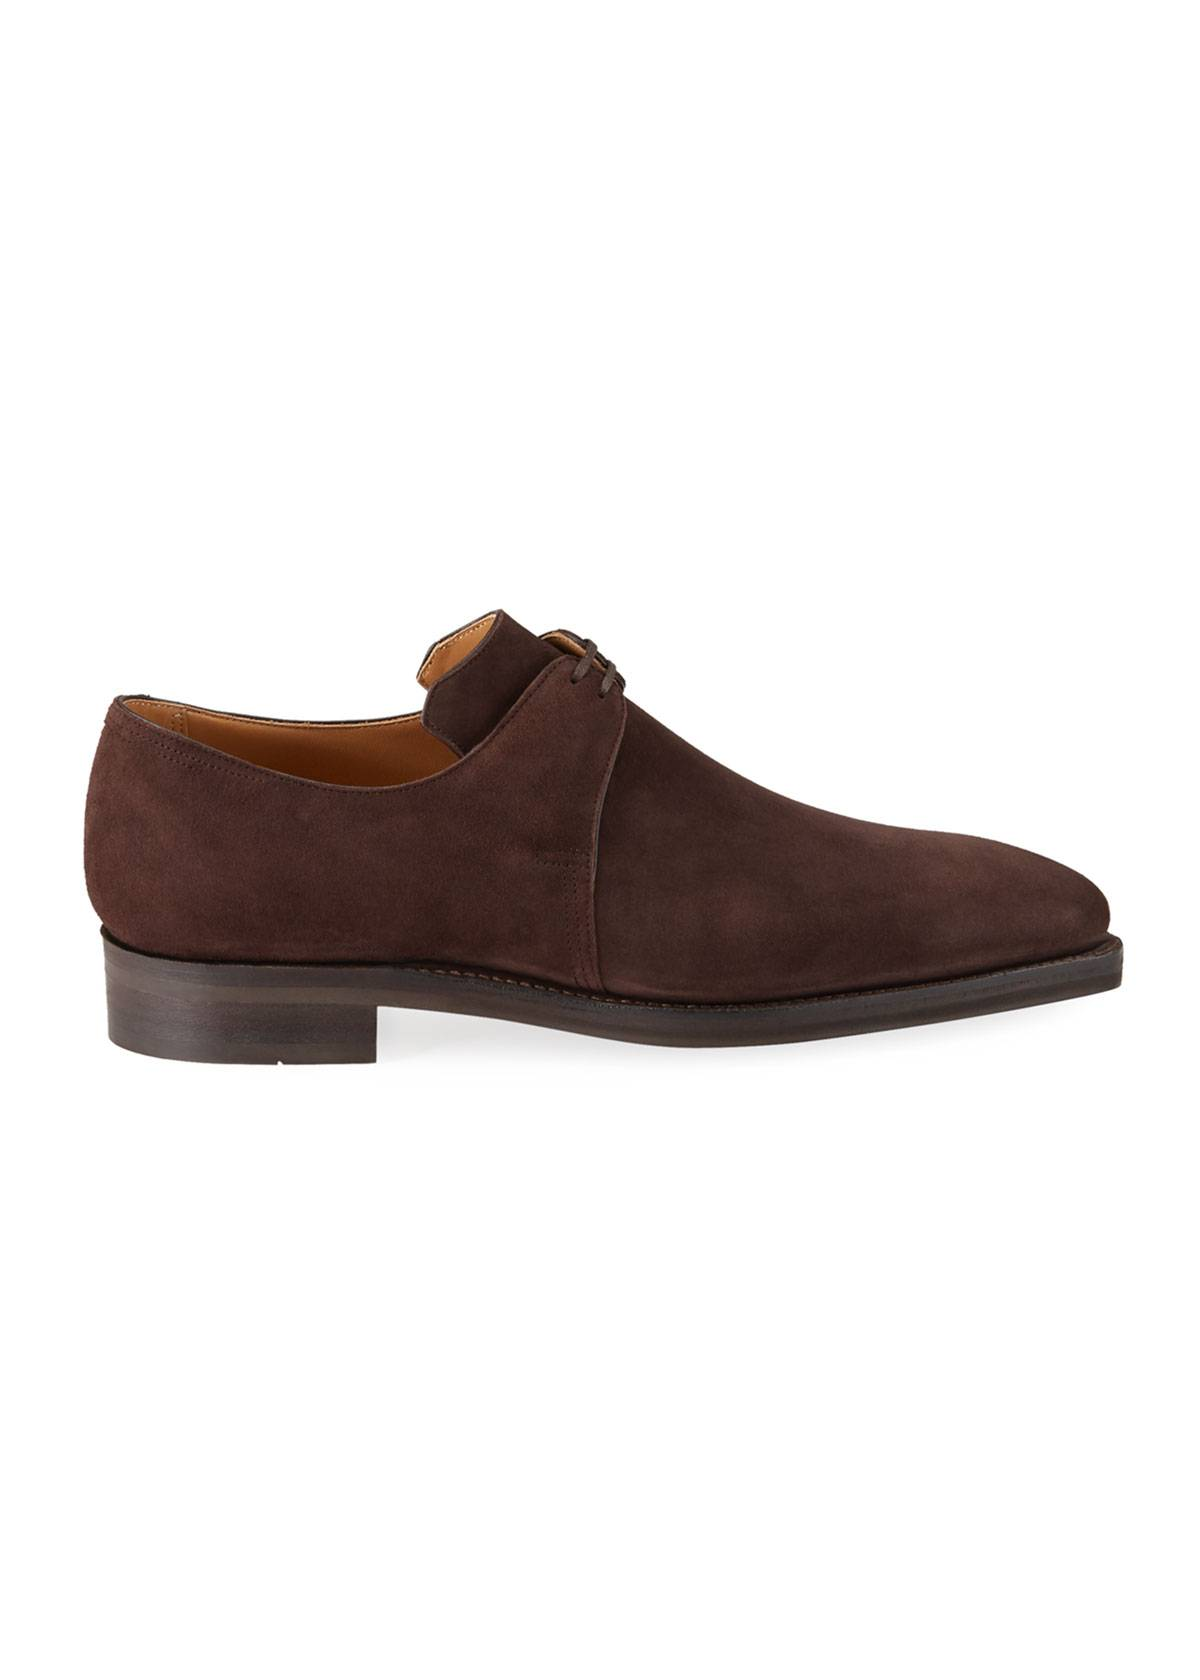 Corthay Men's Arca Suede Derby Shoes  - male - BROWN - Size: 8D